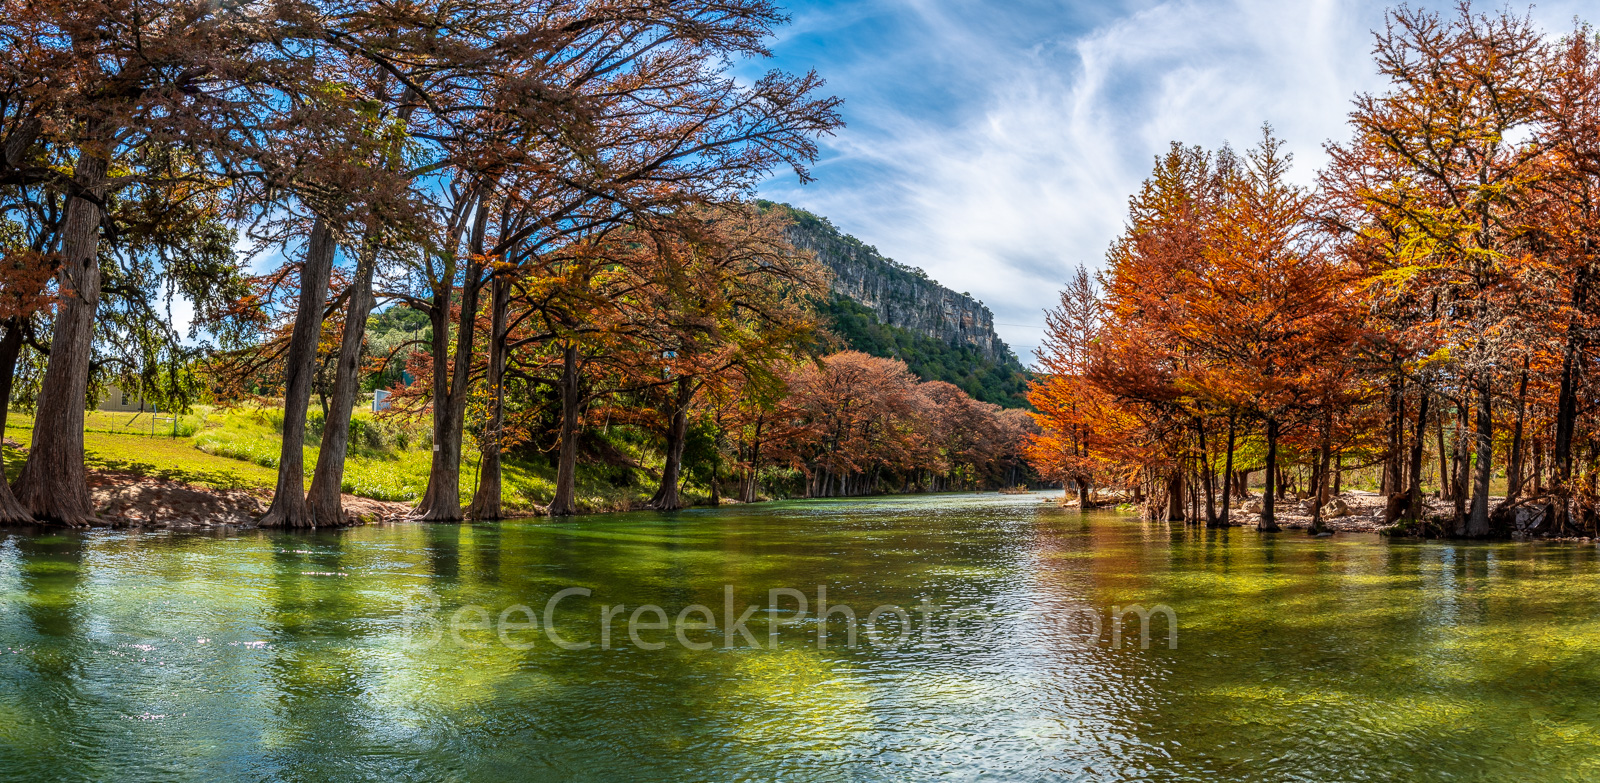 Fall Foliage, fall, cypress branches, cypress tree, maples, fall, autumn, frio river, old baldy, colors, Garner State Park, panorama, pano, panoramic, Texas, landscape, texas hill country, canvas, pri, photo